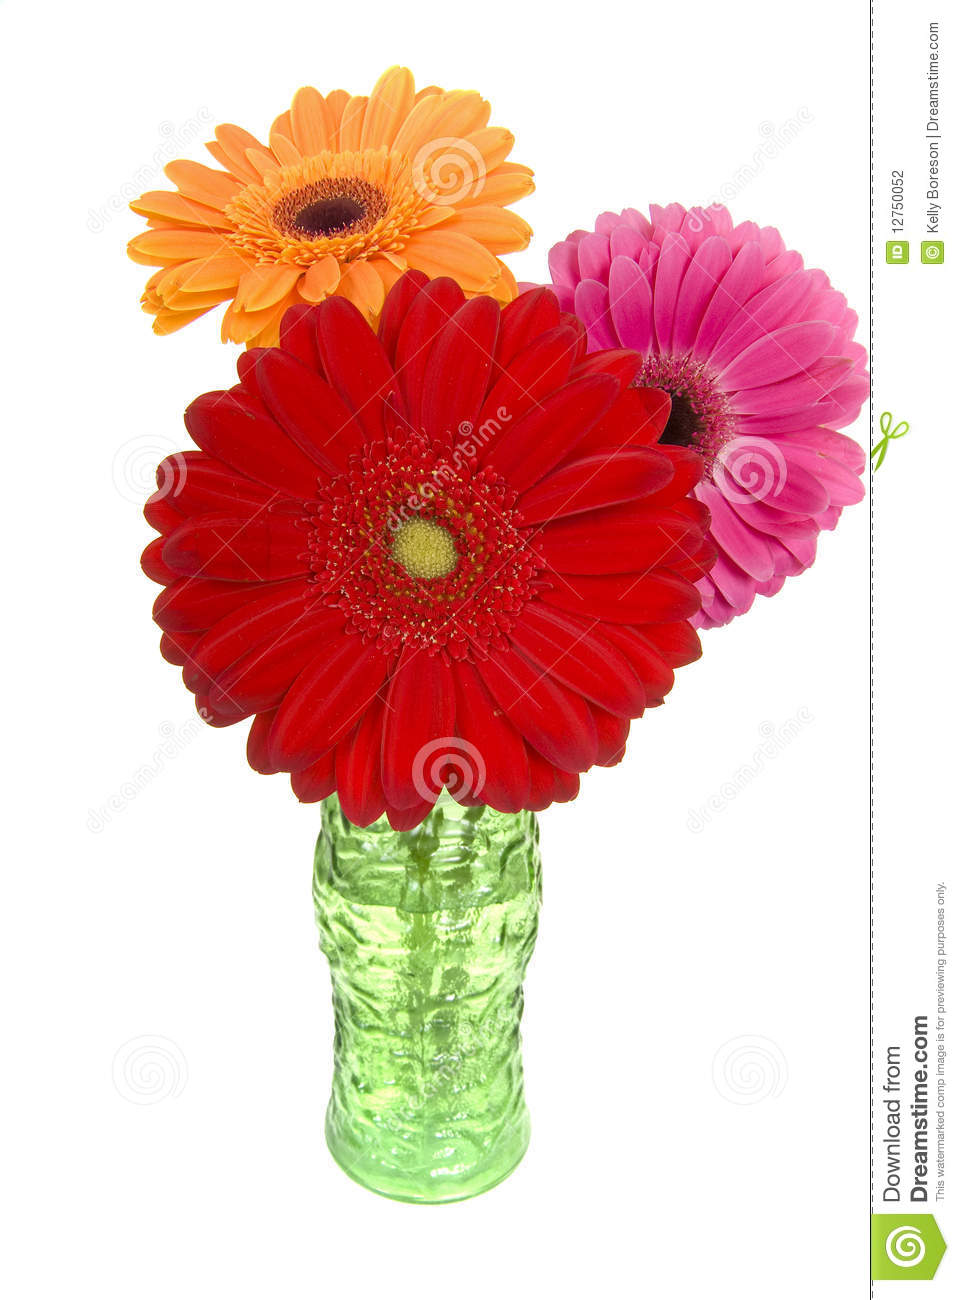 Three Colorful Gerber Daisies In Vase Stock Photo - Image ...